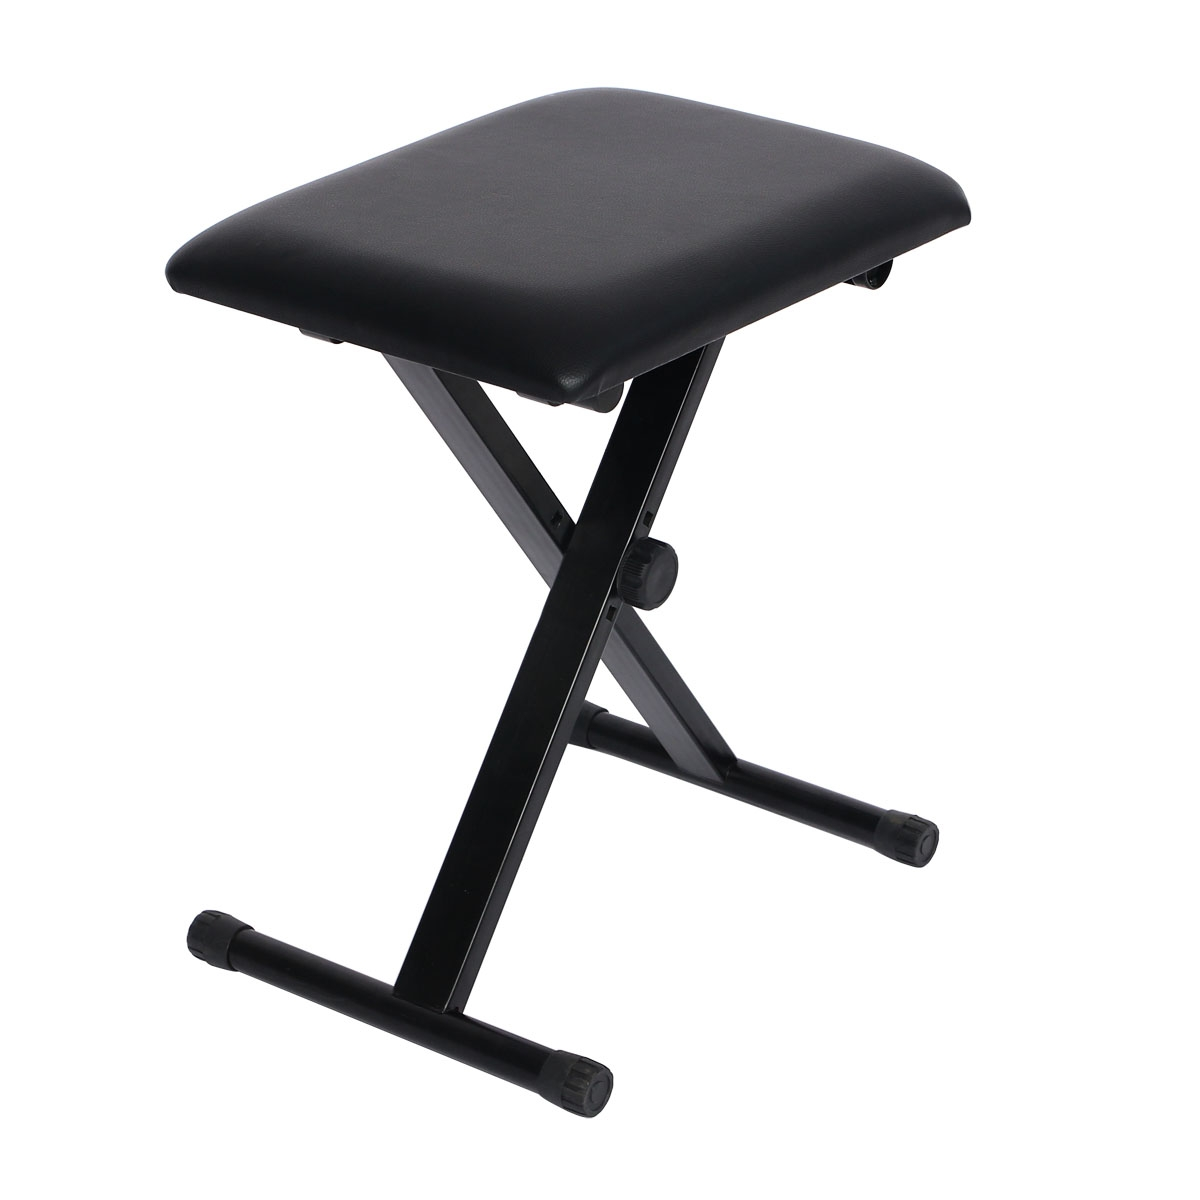 Ohuhu Keyboard Bench Adjustable Stool Padded Seat for Drummer, Percussion, Keyboard, Piano... by Ohuhu